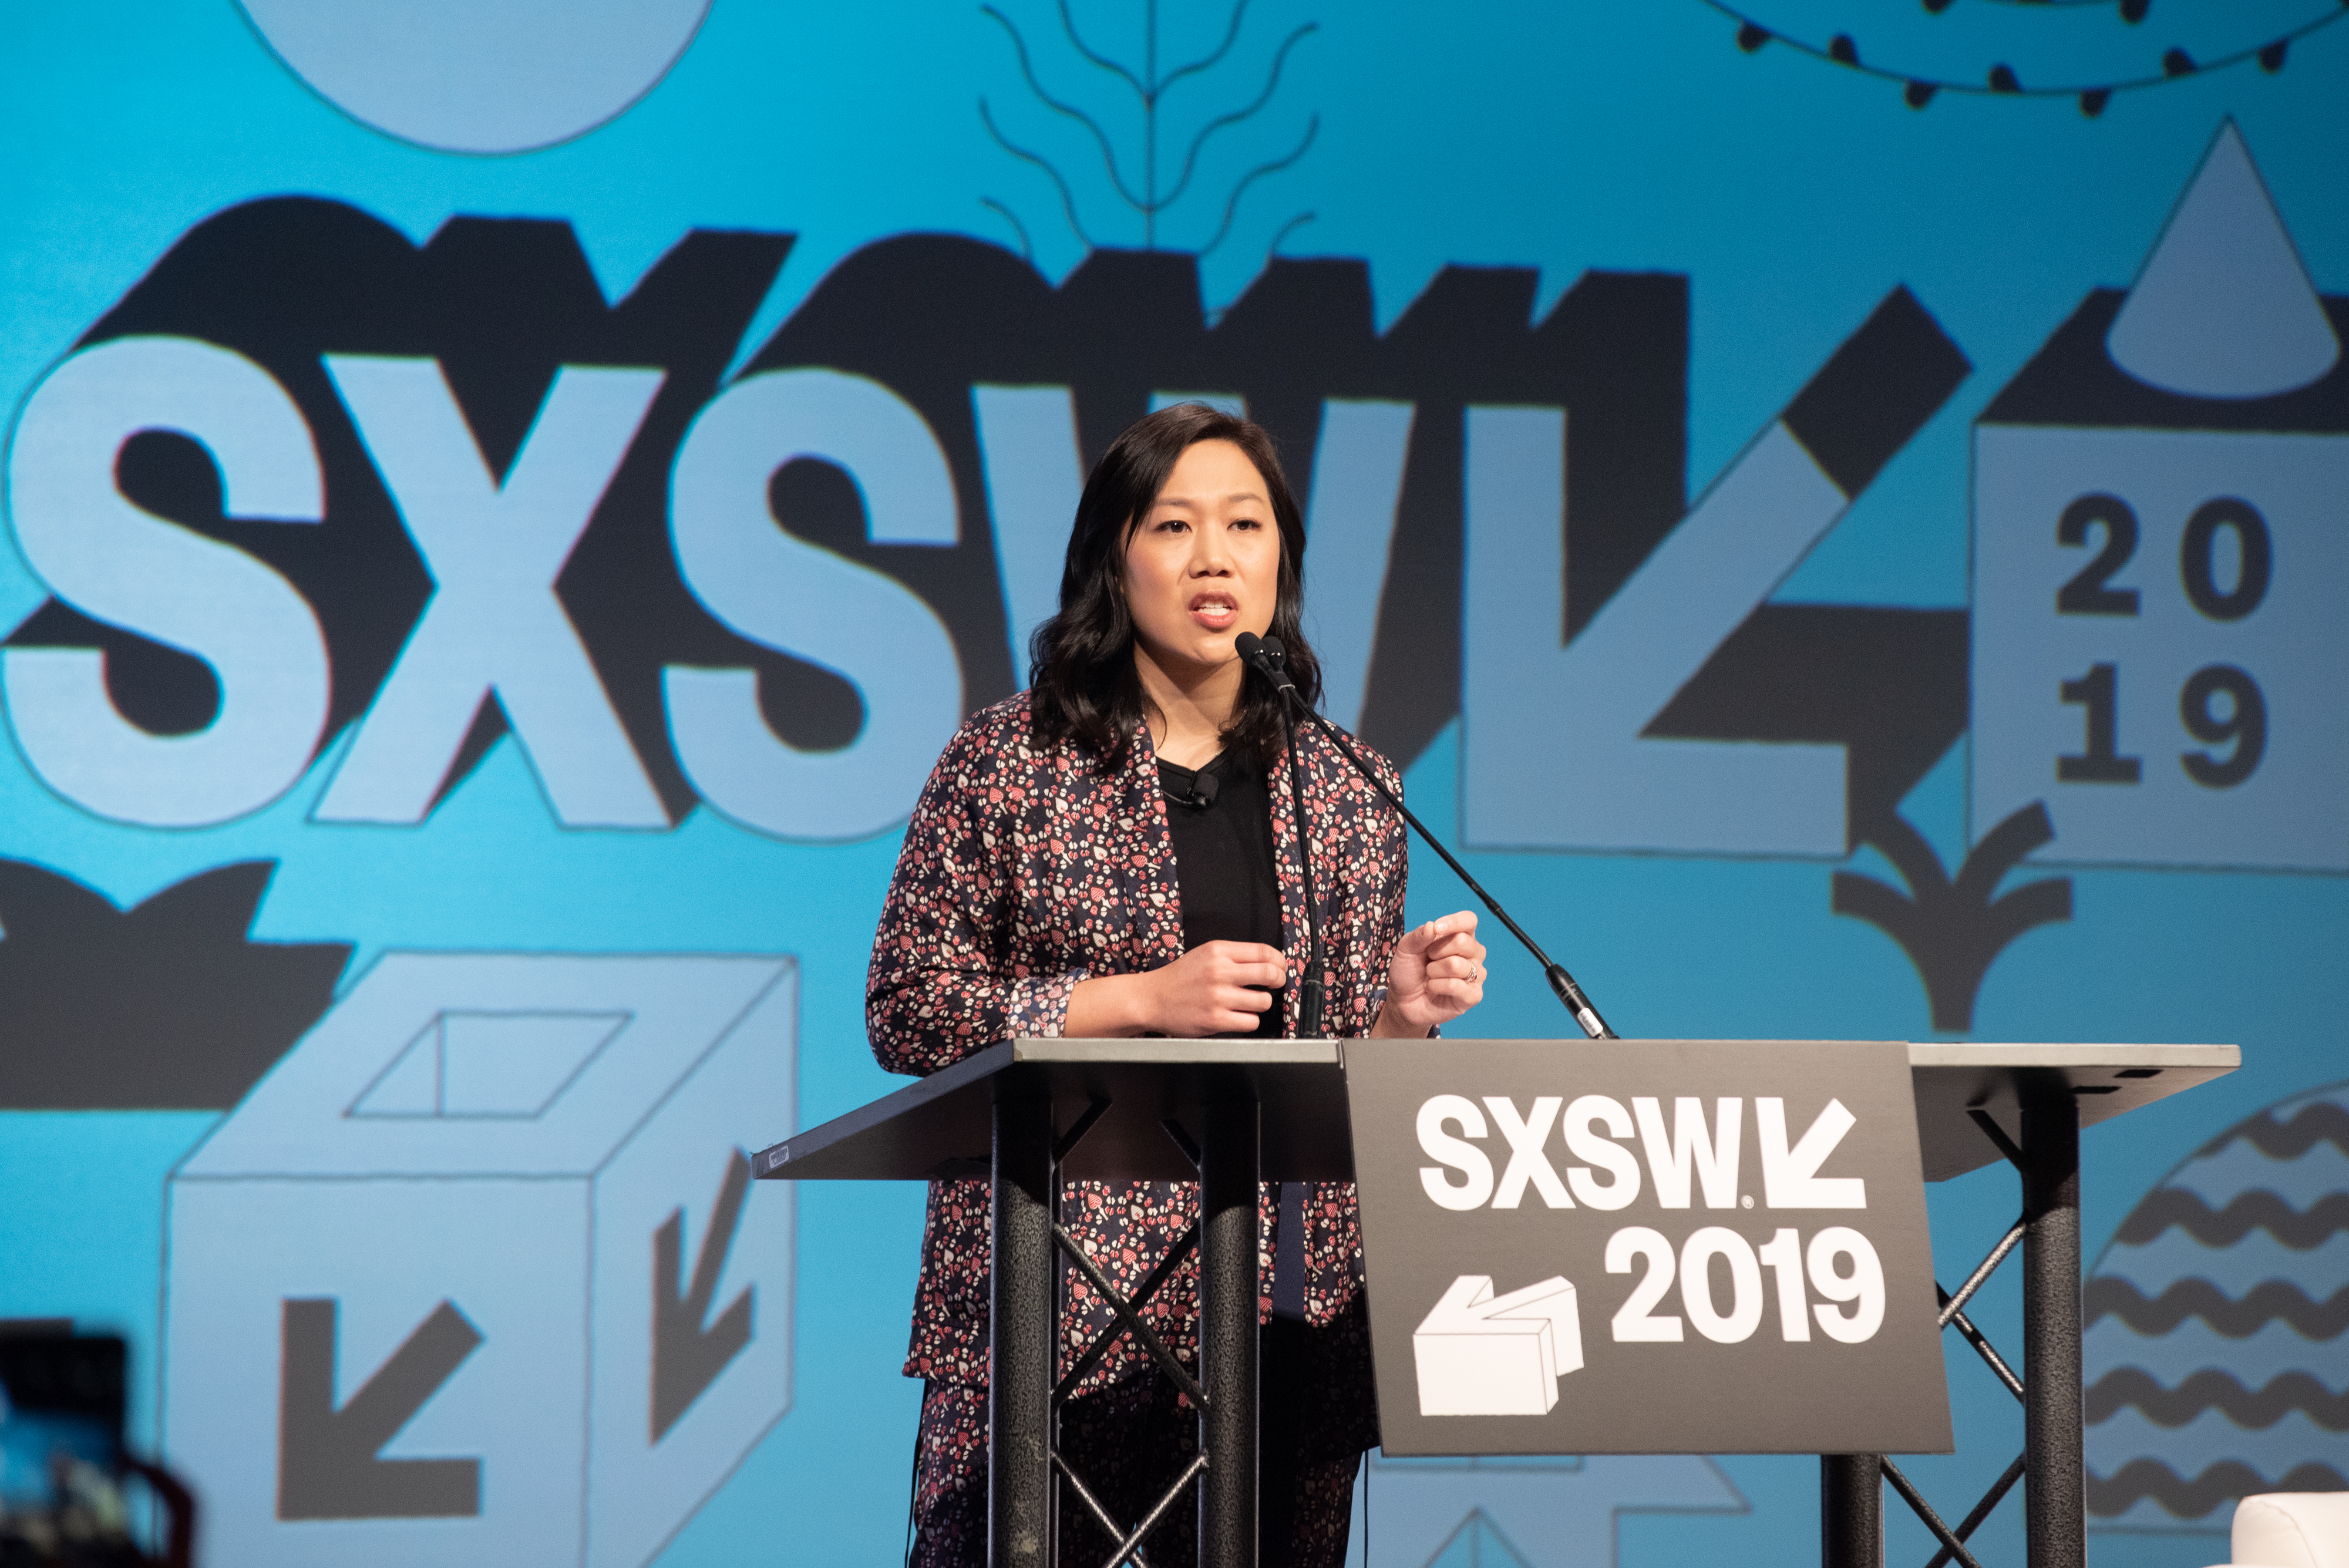 AUSTIN, TEXAS - MARCH 08: Priscilla Chan of the Chan Zuckerberg Initiative speaks at the Hilton during SXSW on March 08, 2019 in Austin, Texas. (Photo by Jim Bennett/WireImage)